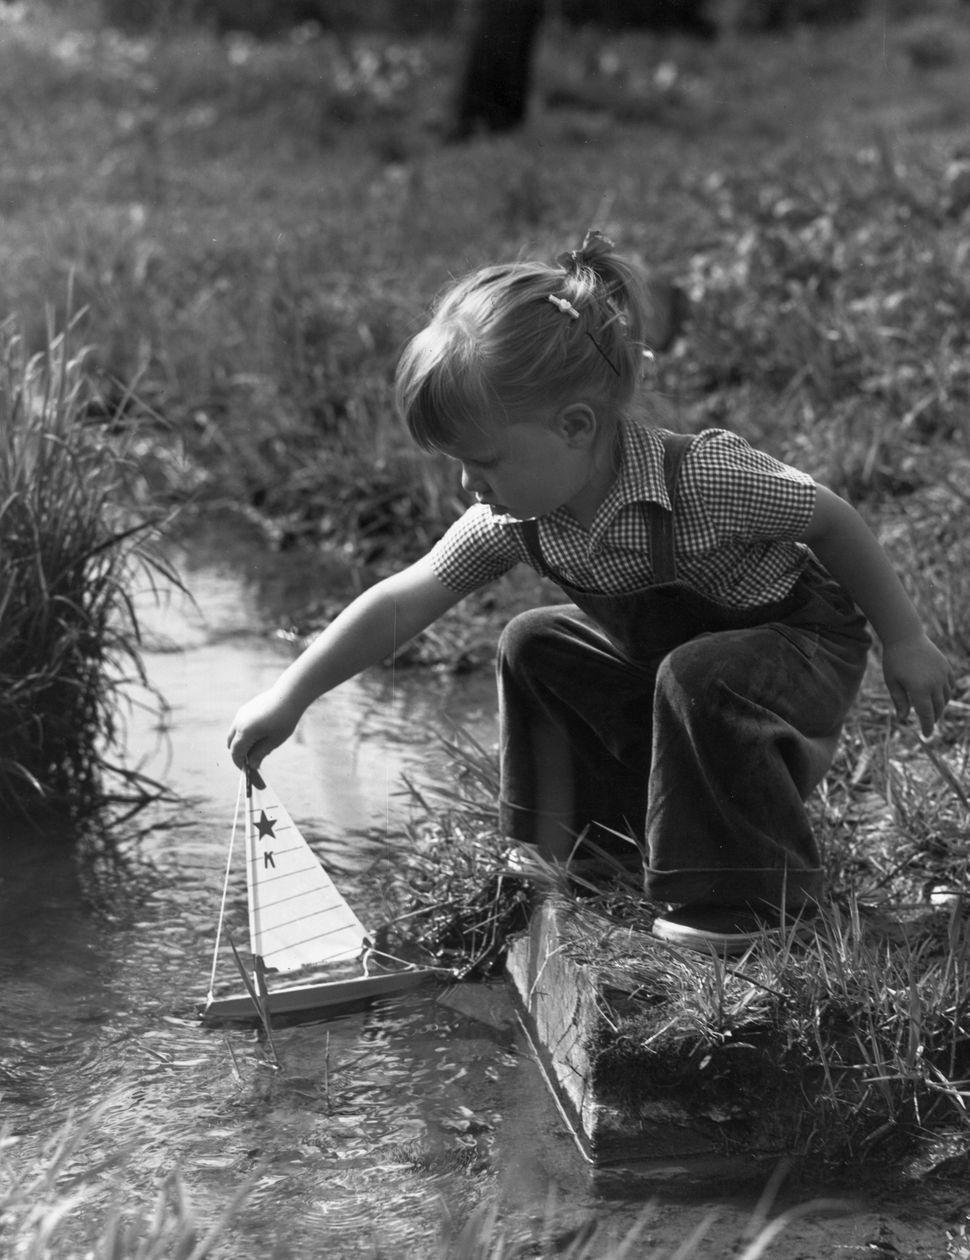 Circa 1945:  Full-length image of a young girl crouching on the grassy banks of a stream, holding the mast of a toy sailboat